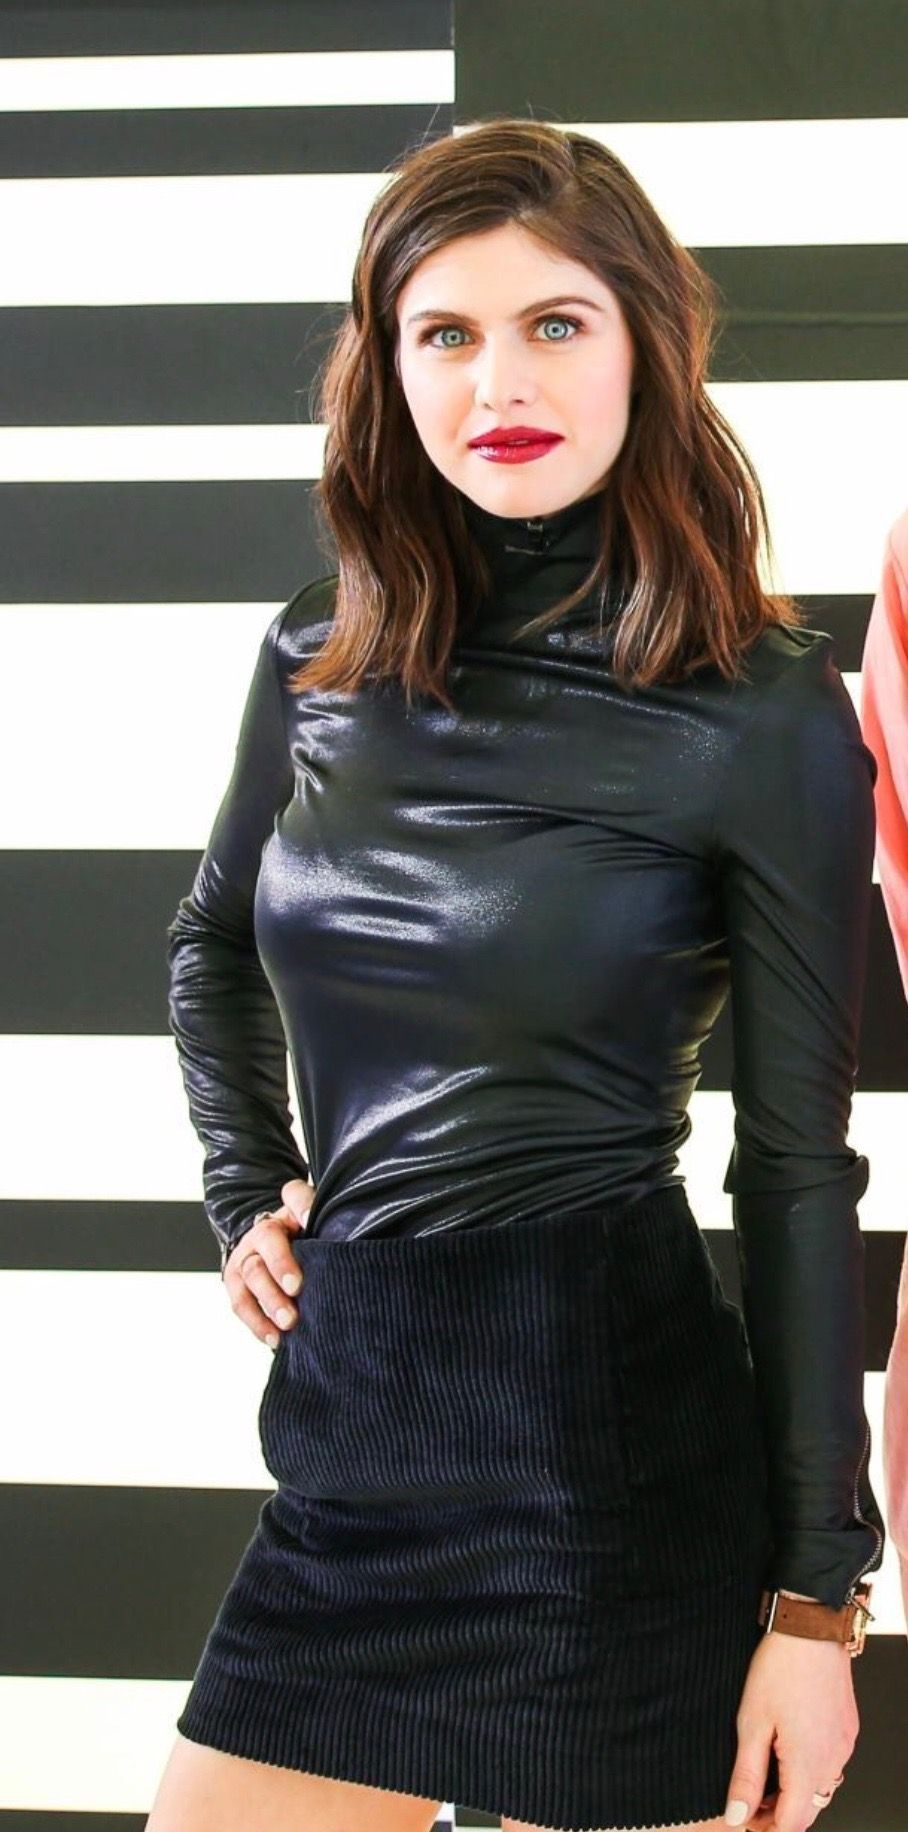 Alexandra Daddario Wearing A Leather Top And Mini Skirt